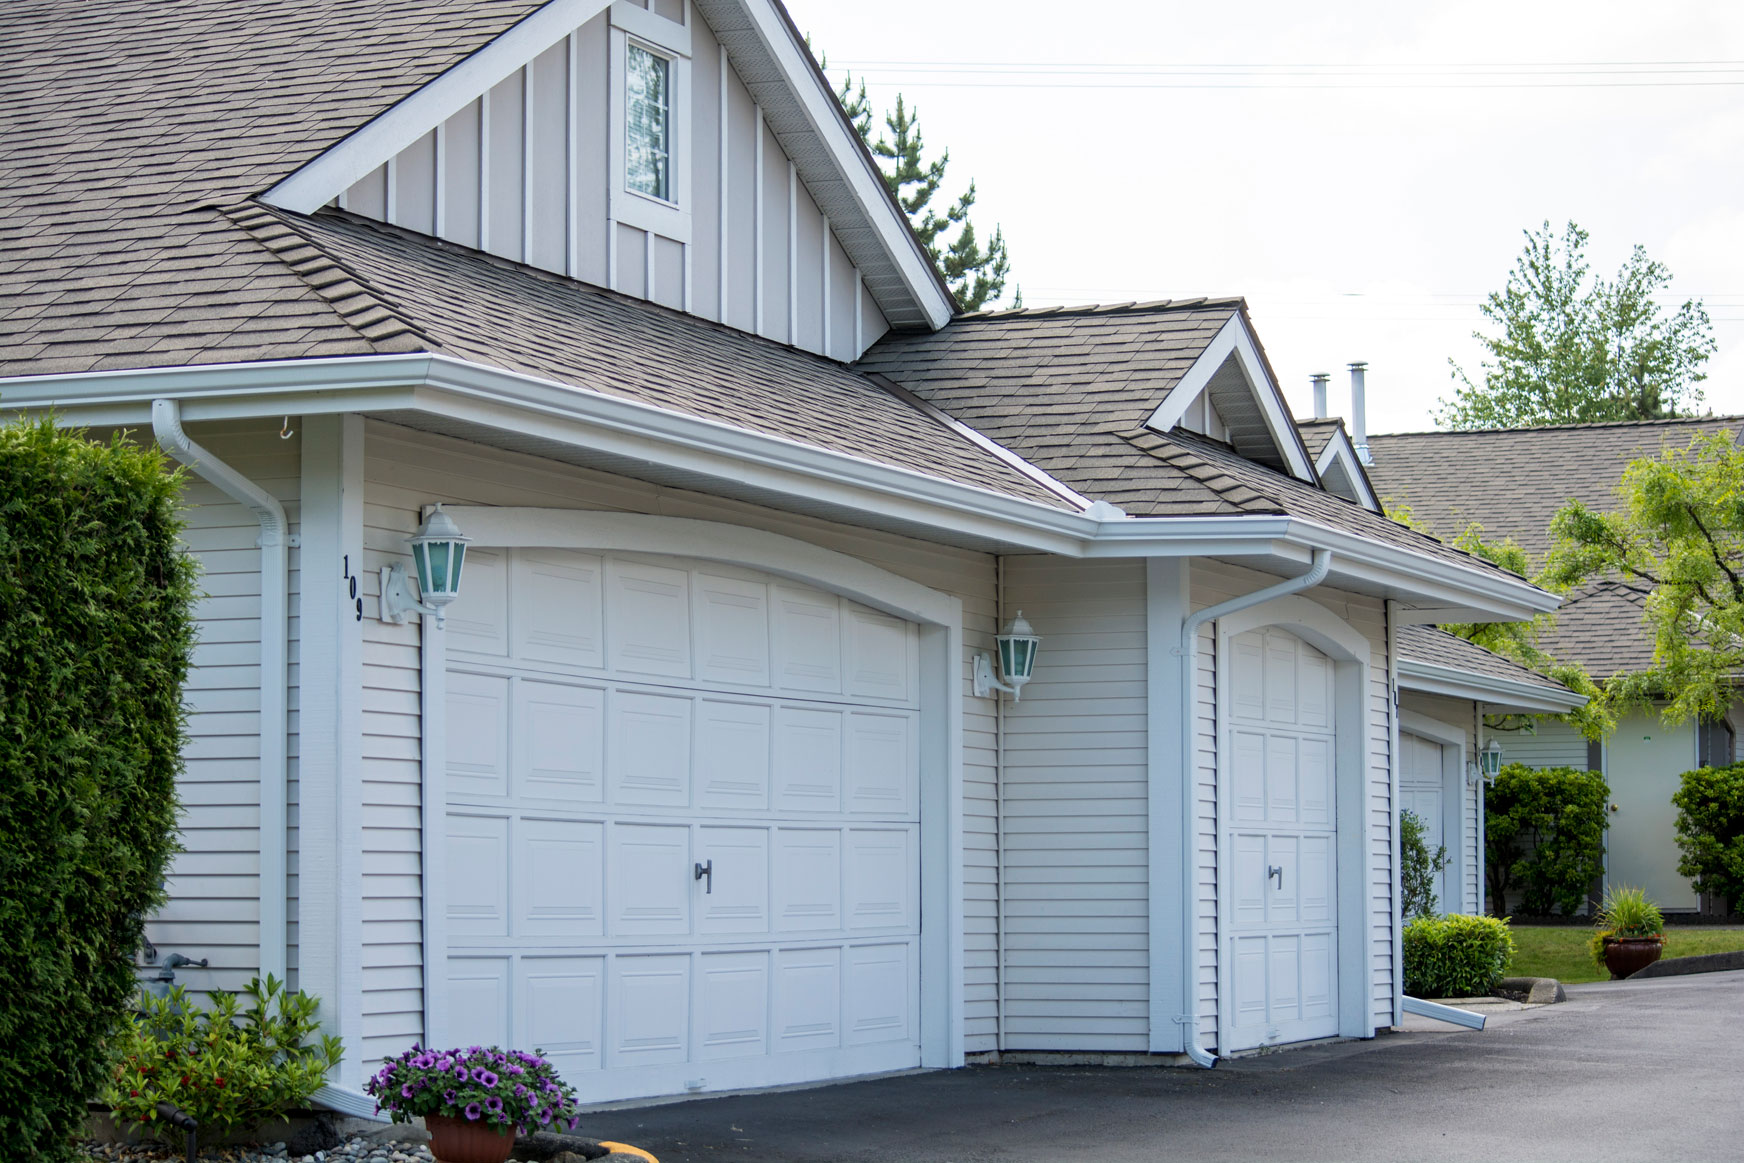 residential gutter cleaning vancouver Our north vancouver gutter cleaning programs are done by vacuum and  sponge, with  we also have a team dedicated solely to residential gutter  cleaning.